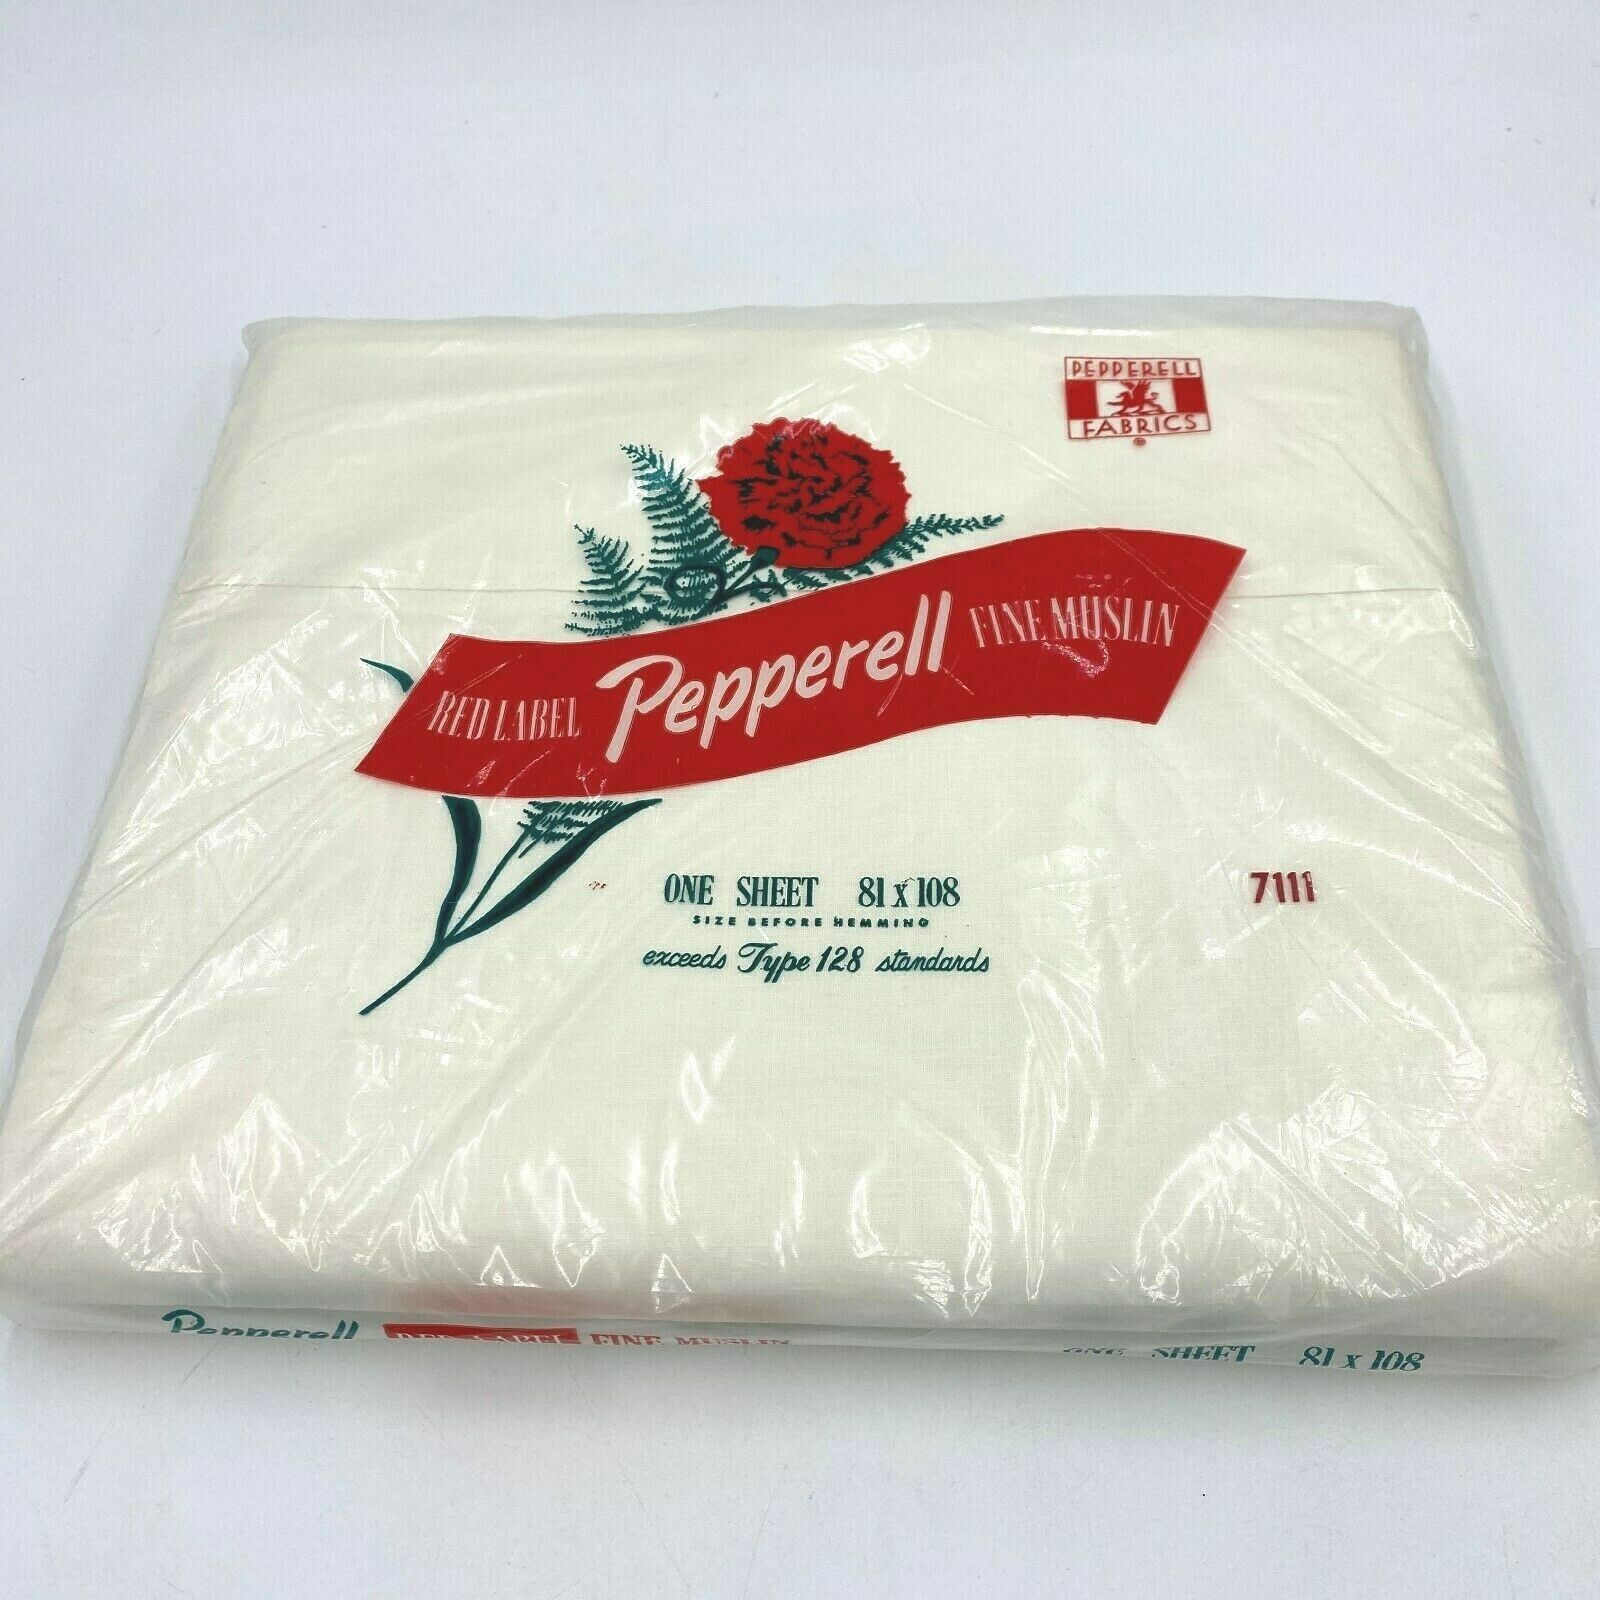 Primary image for Vintage Pepperell White Fine Muslin Flat Sheet Full Size Sealed Red Label USA K9